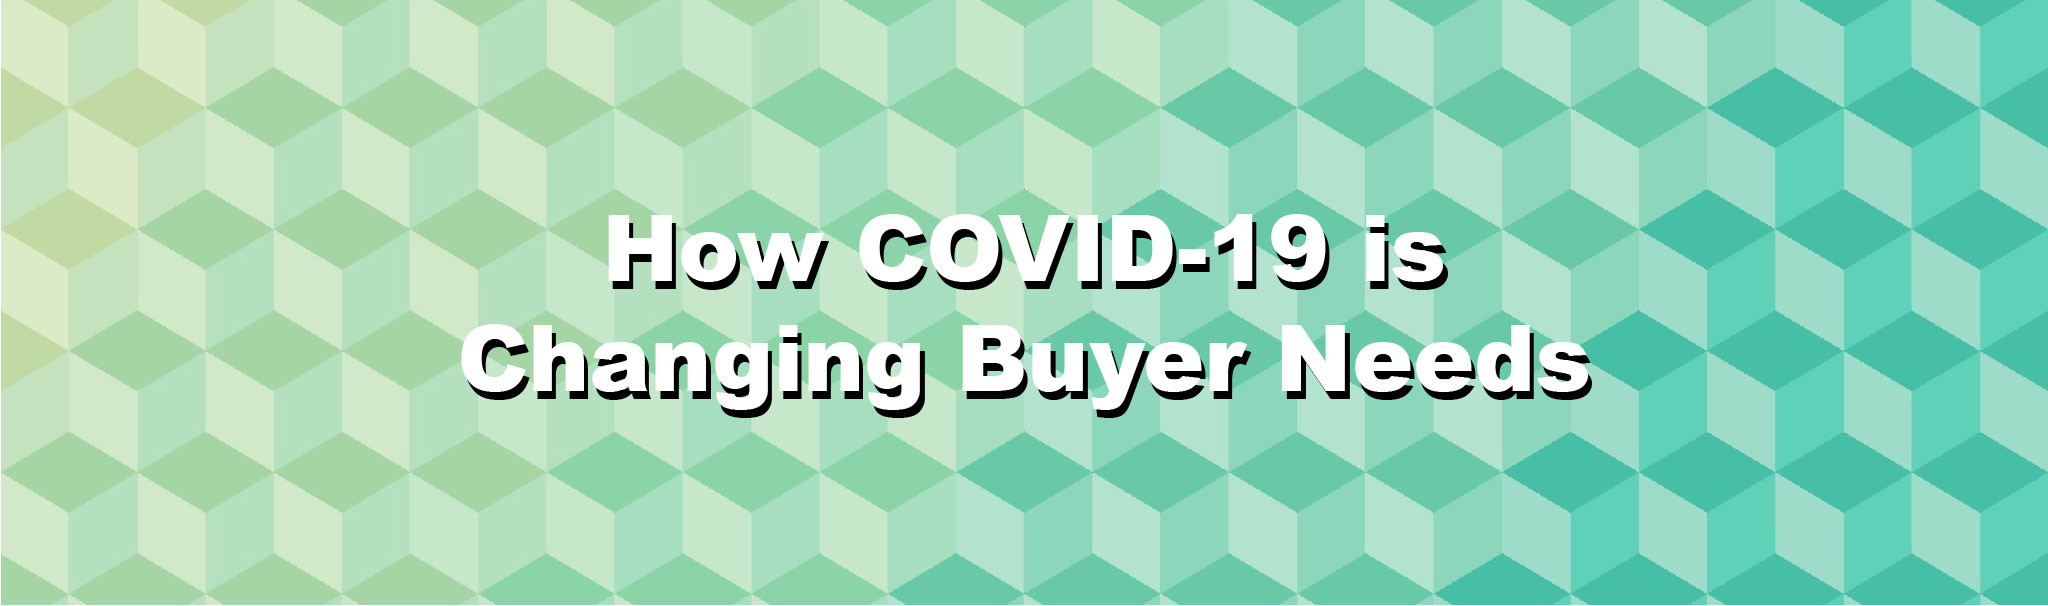 How COVID-19 is Changing Buyer Needs